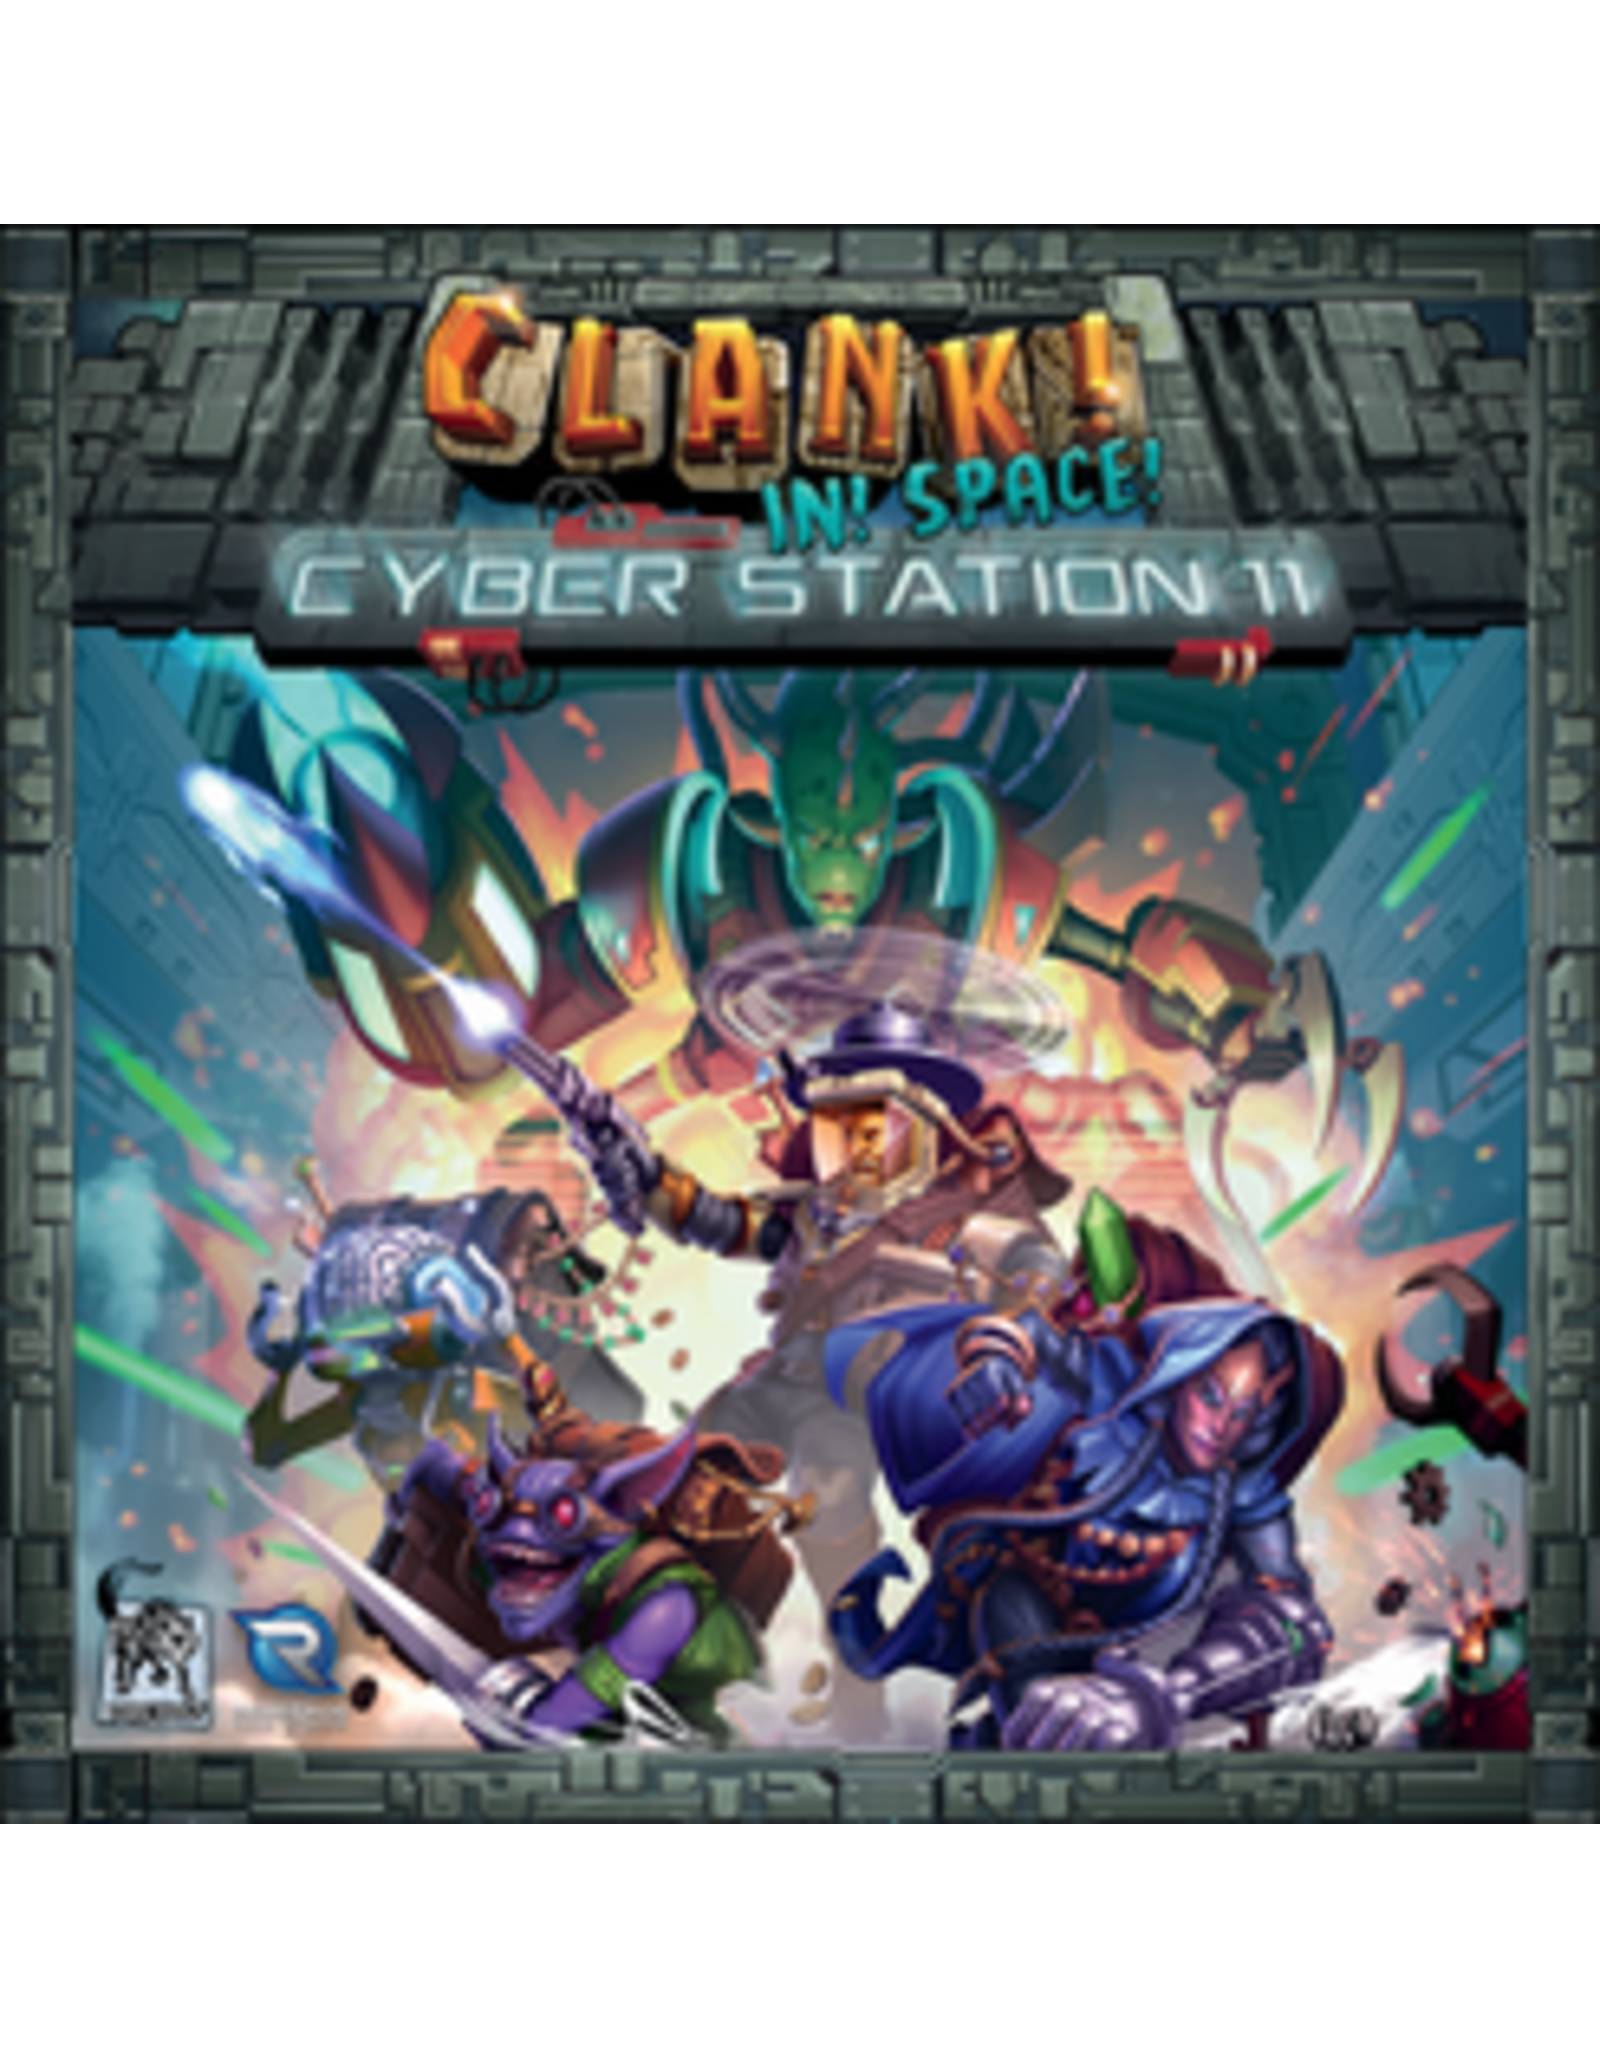 Renegade Game Studios Clank!: In! Space! - Cyber Station 11 Expansion